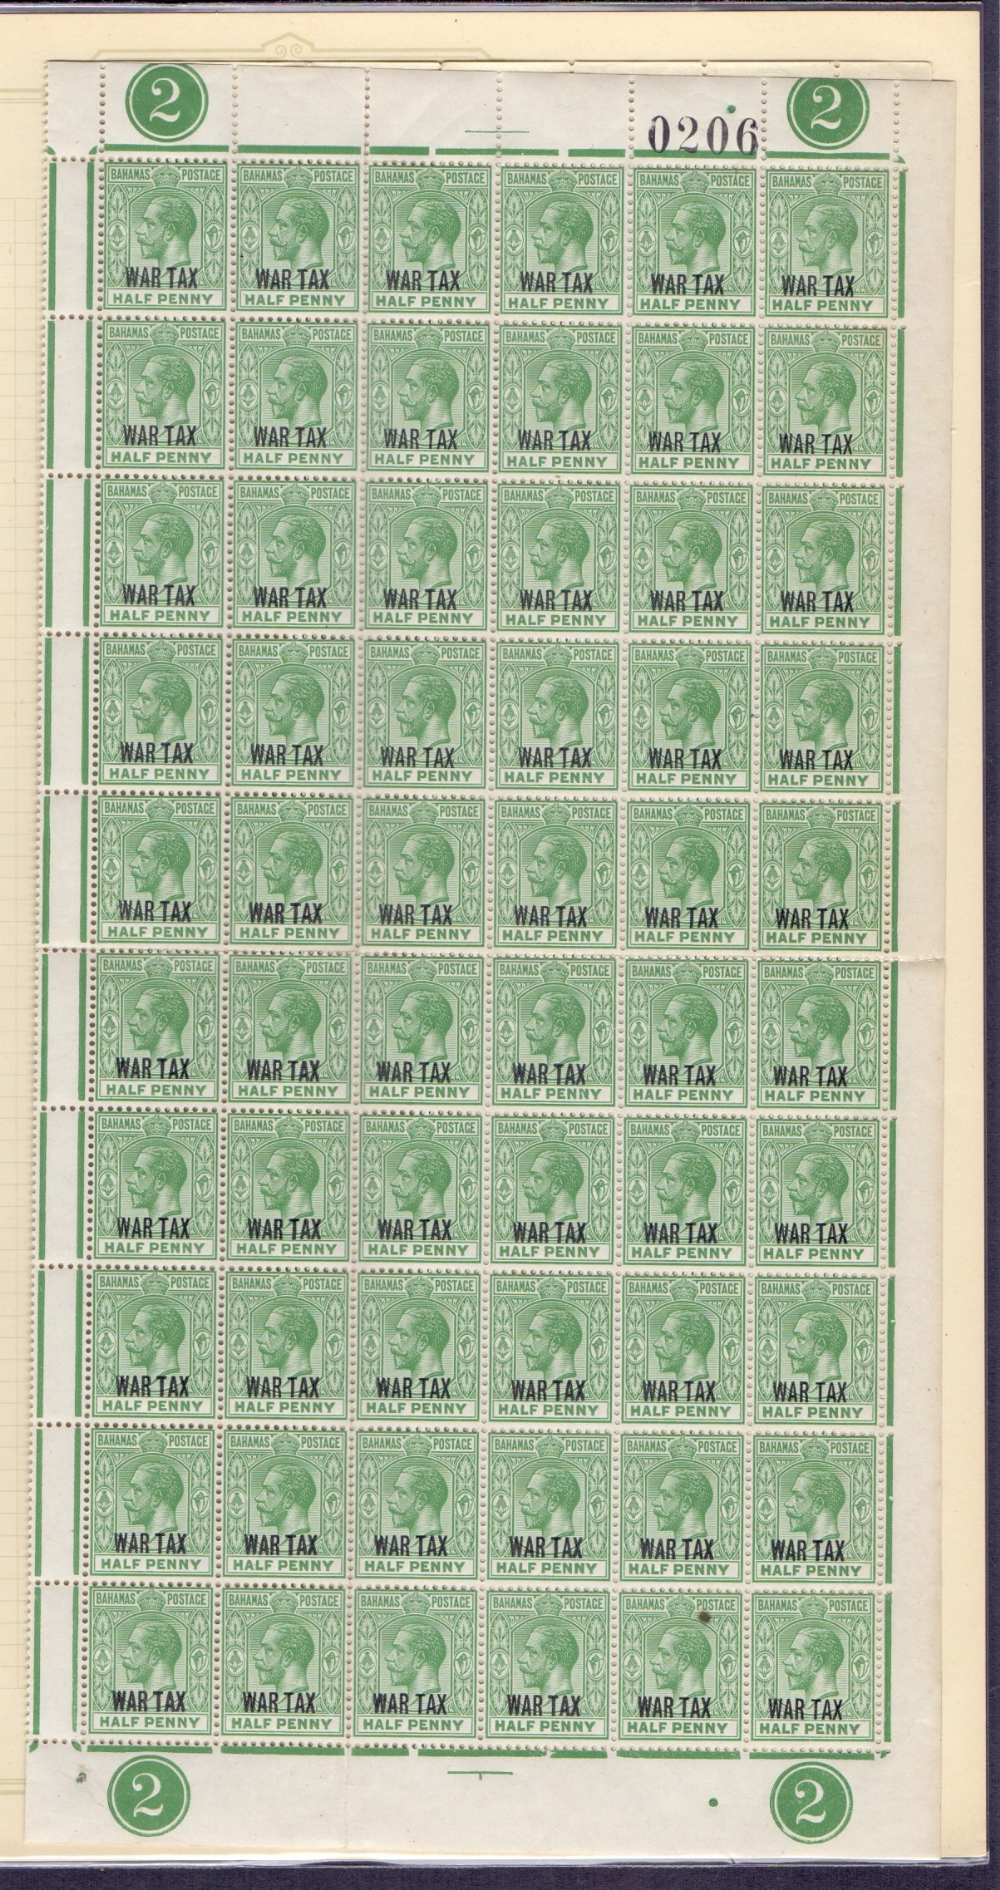 Lot 12 - STAMPS : BRITISH COMMONWEALTH, collection in album of War Tax stamps.